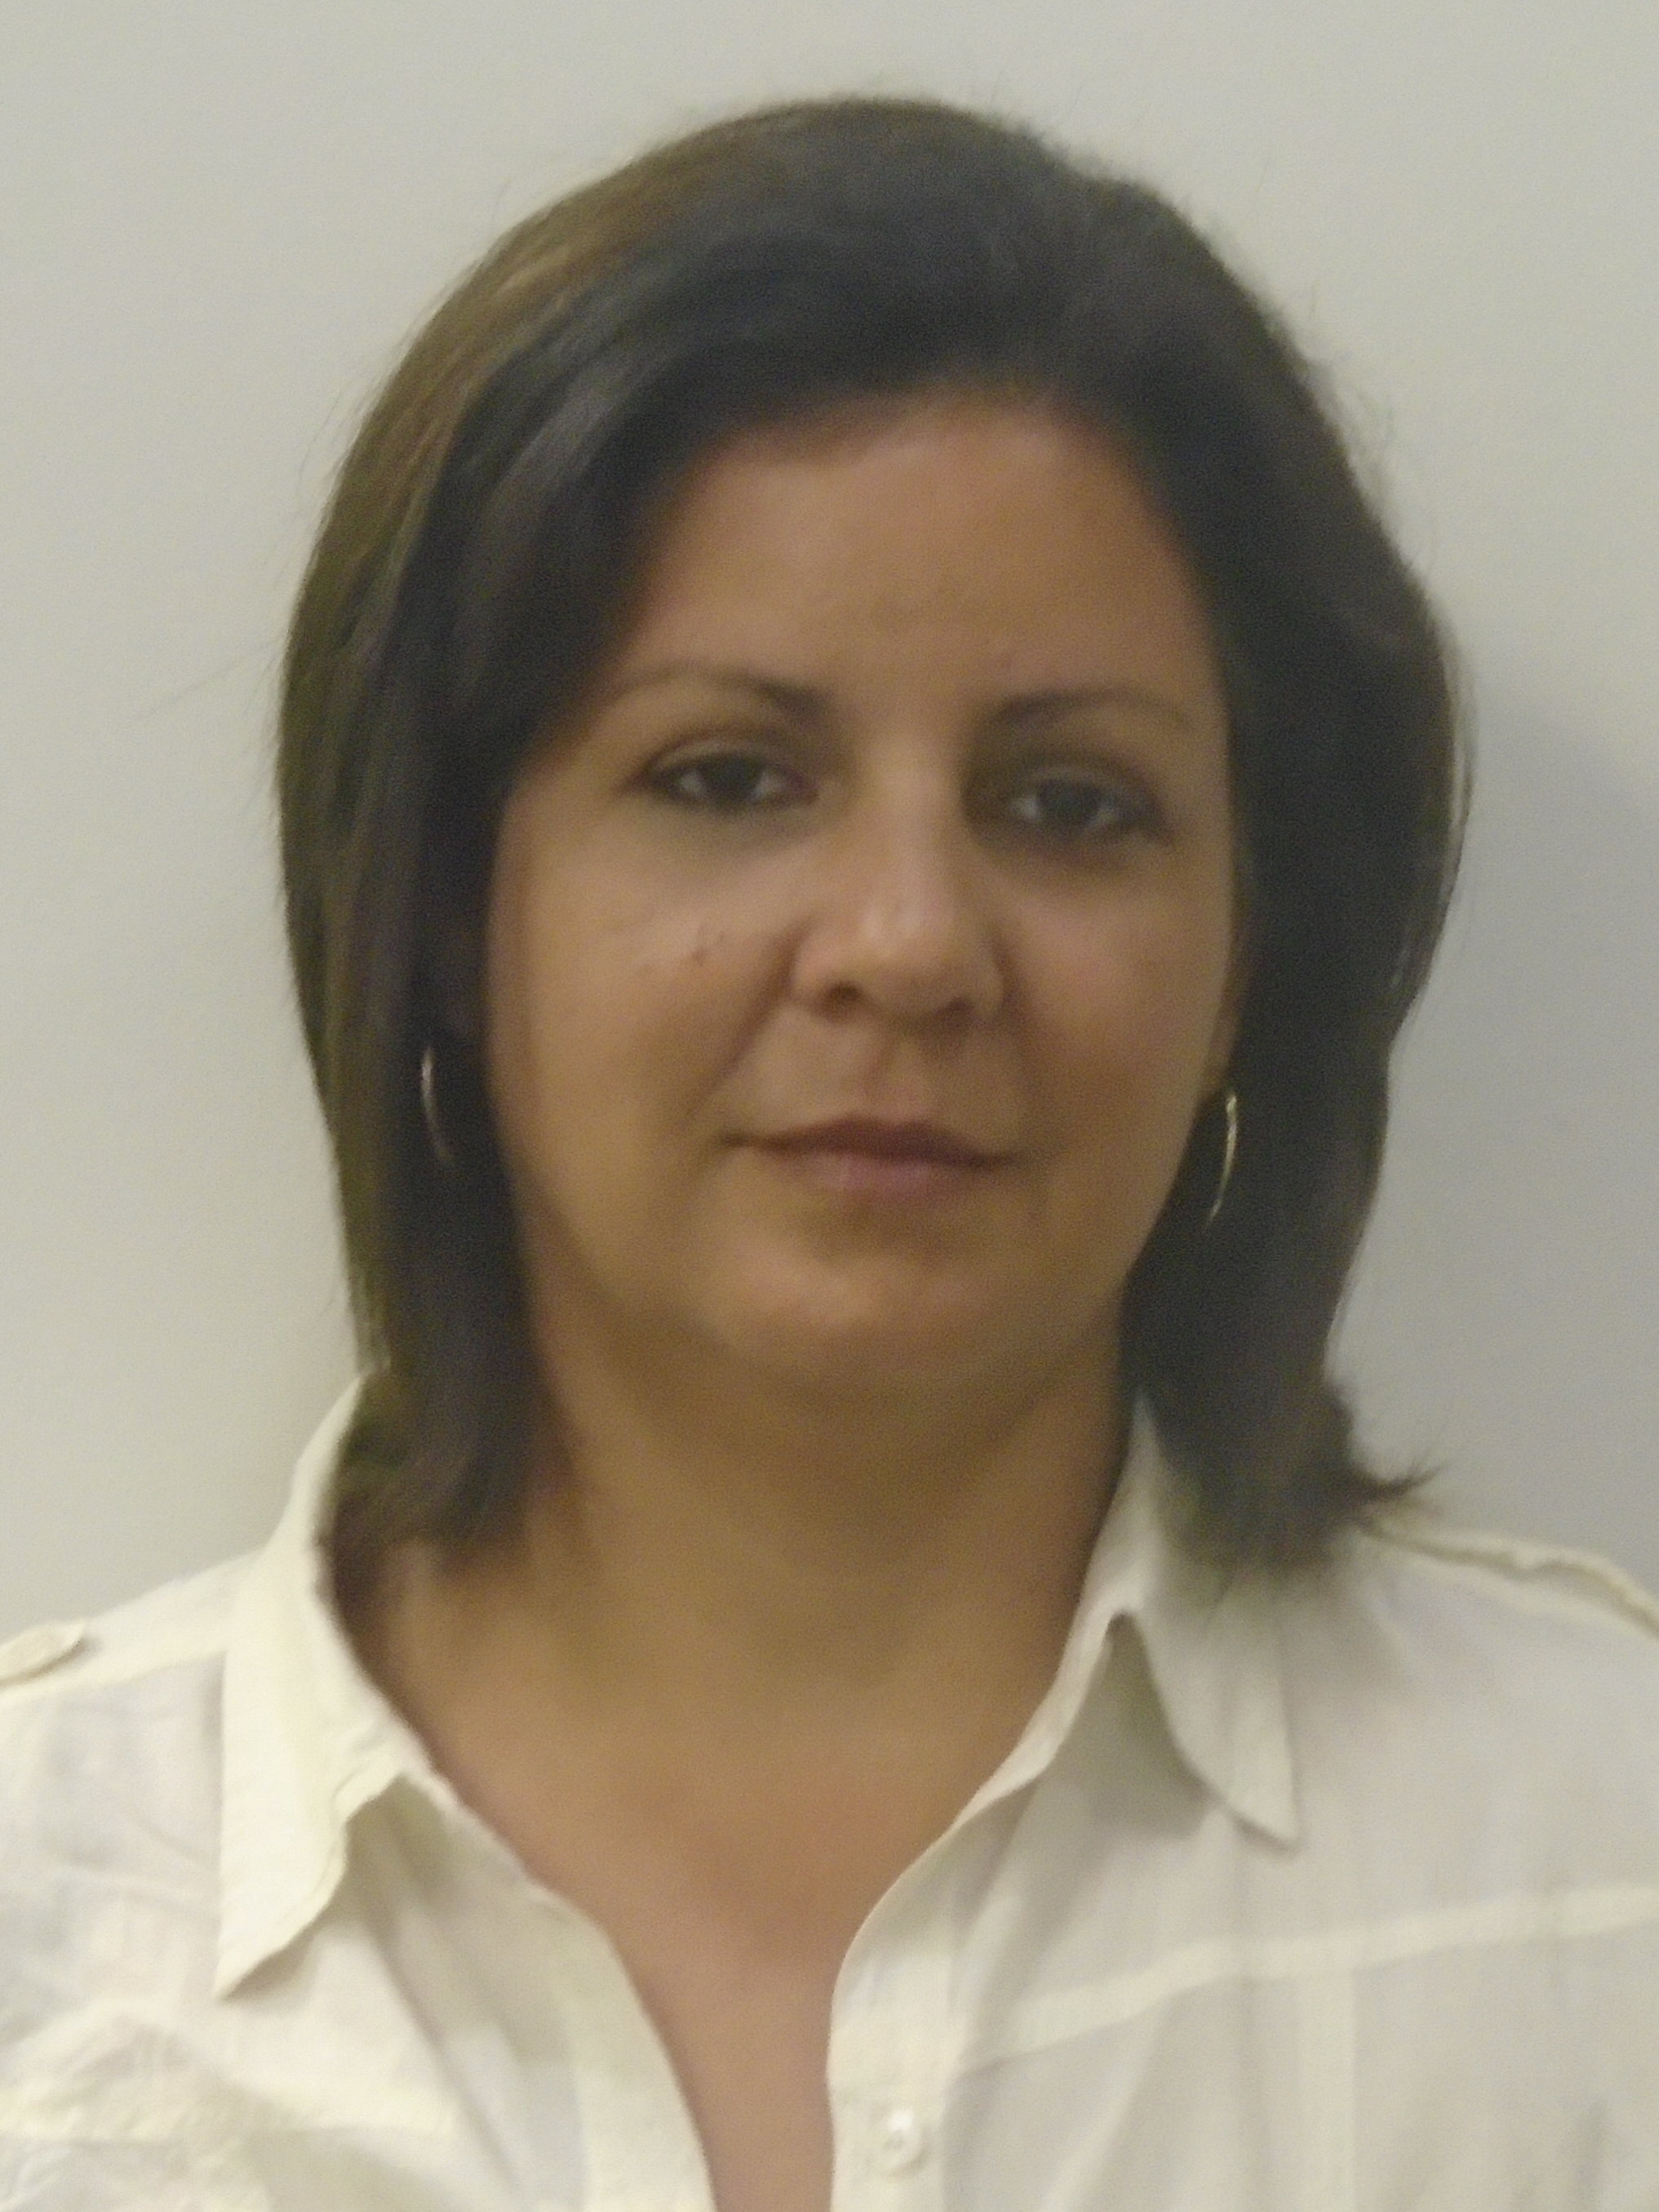 Photo of Cintia Amaral Montesino